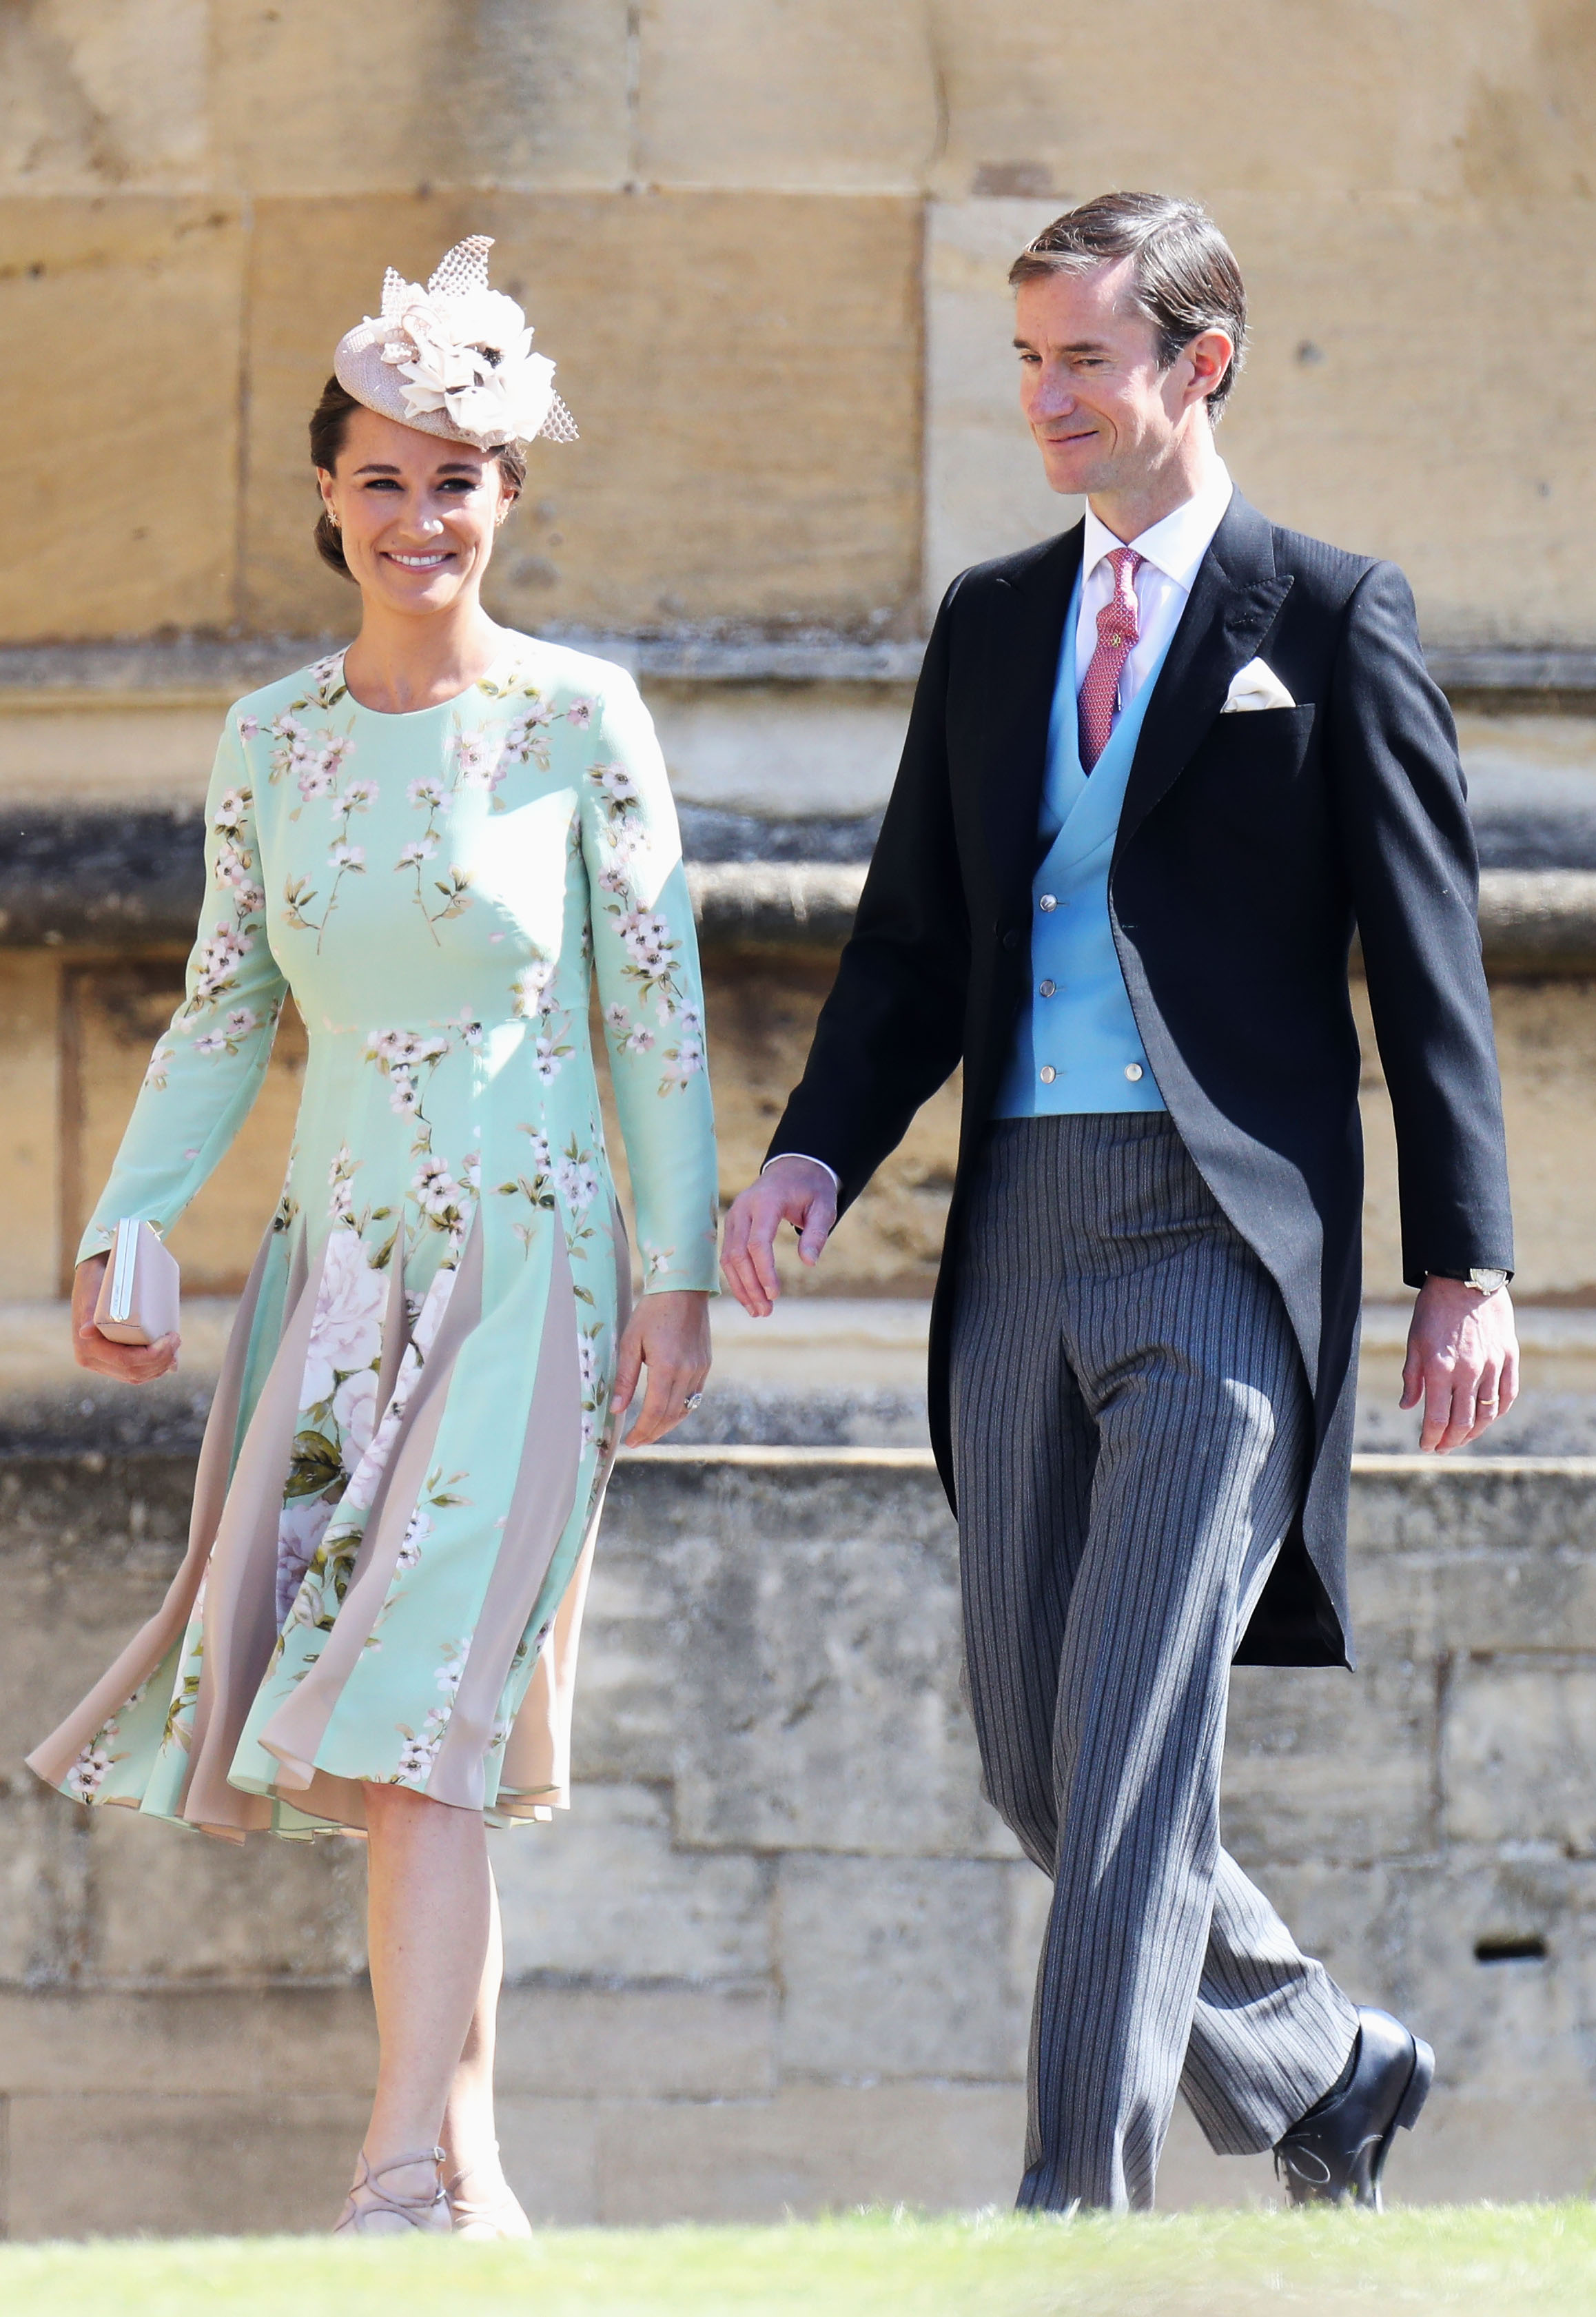 Pippa Middleton In Mint Green Floral Dress